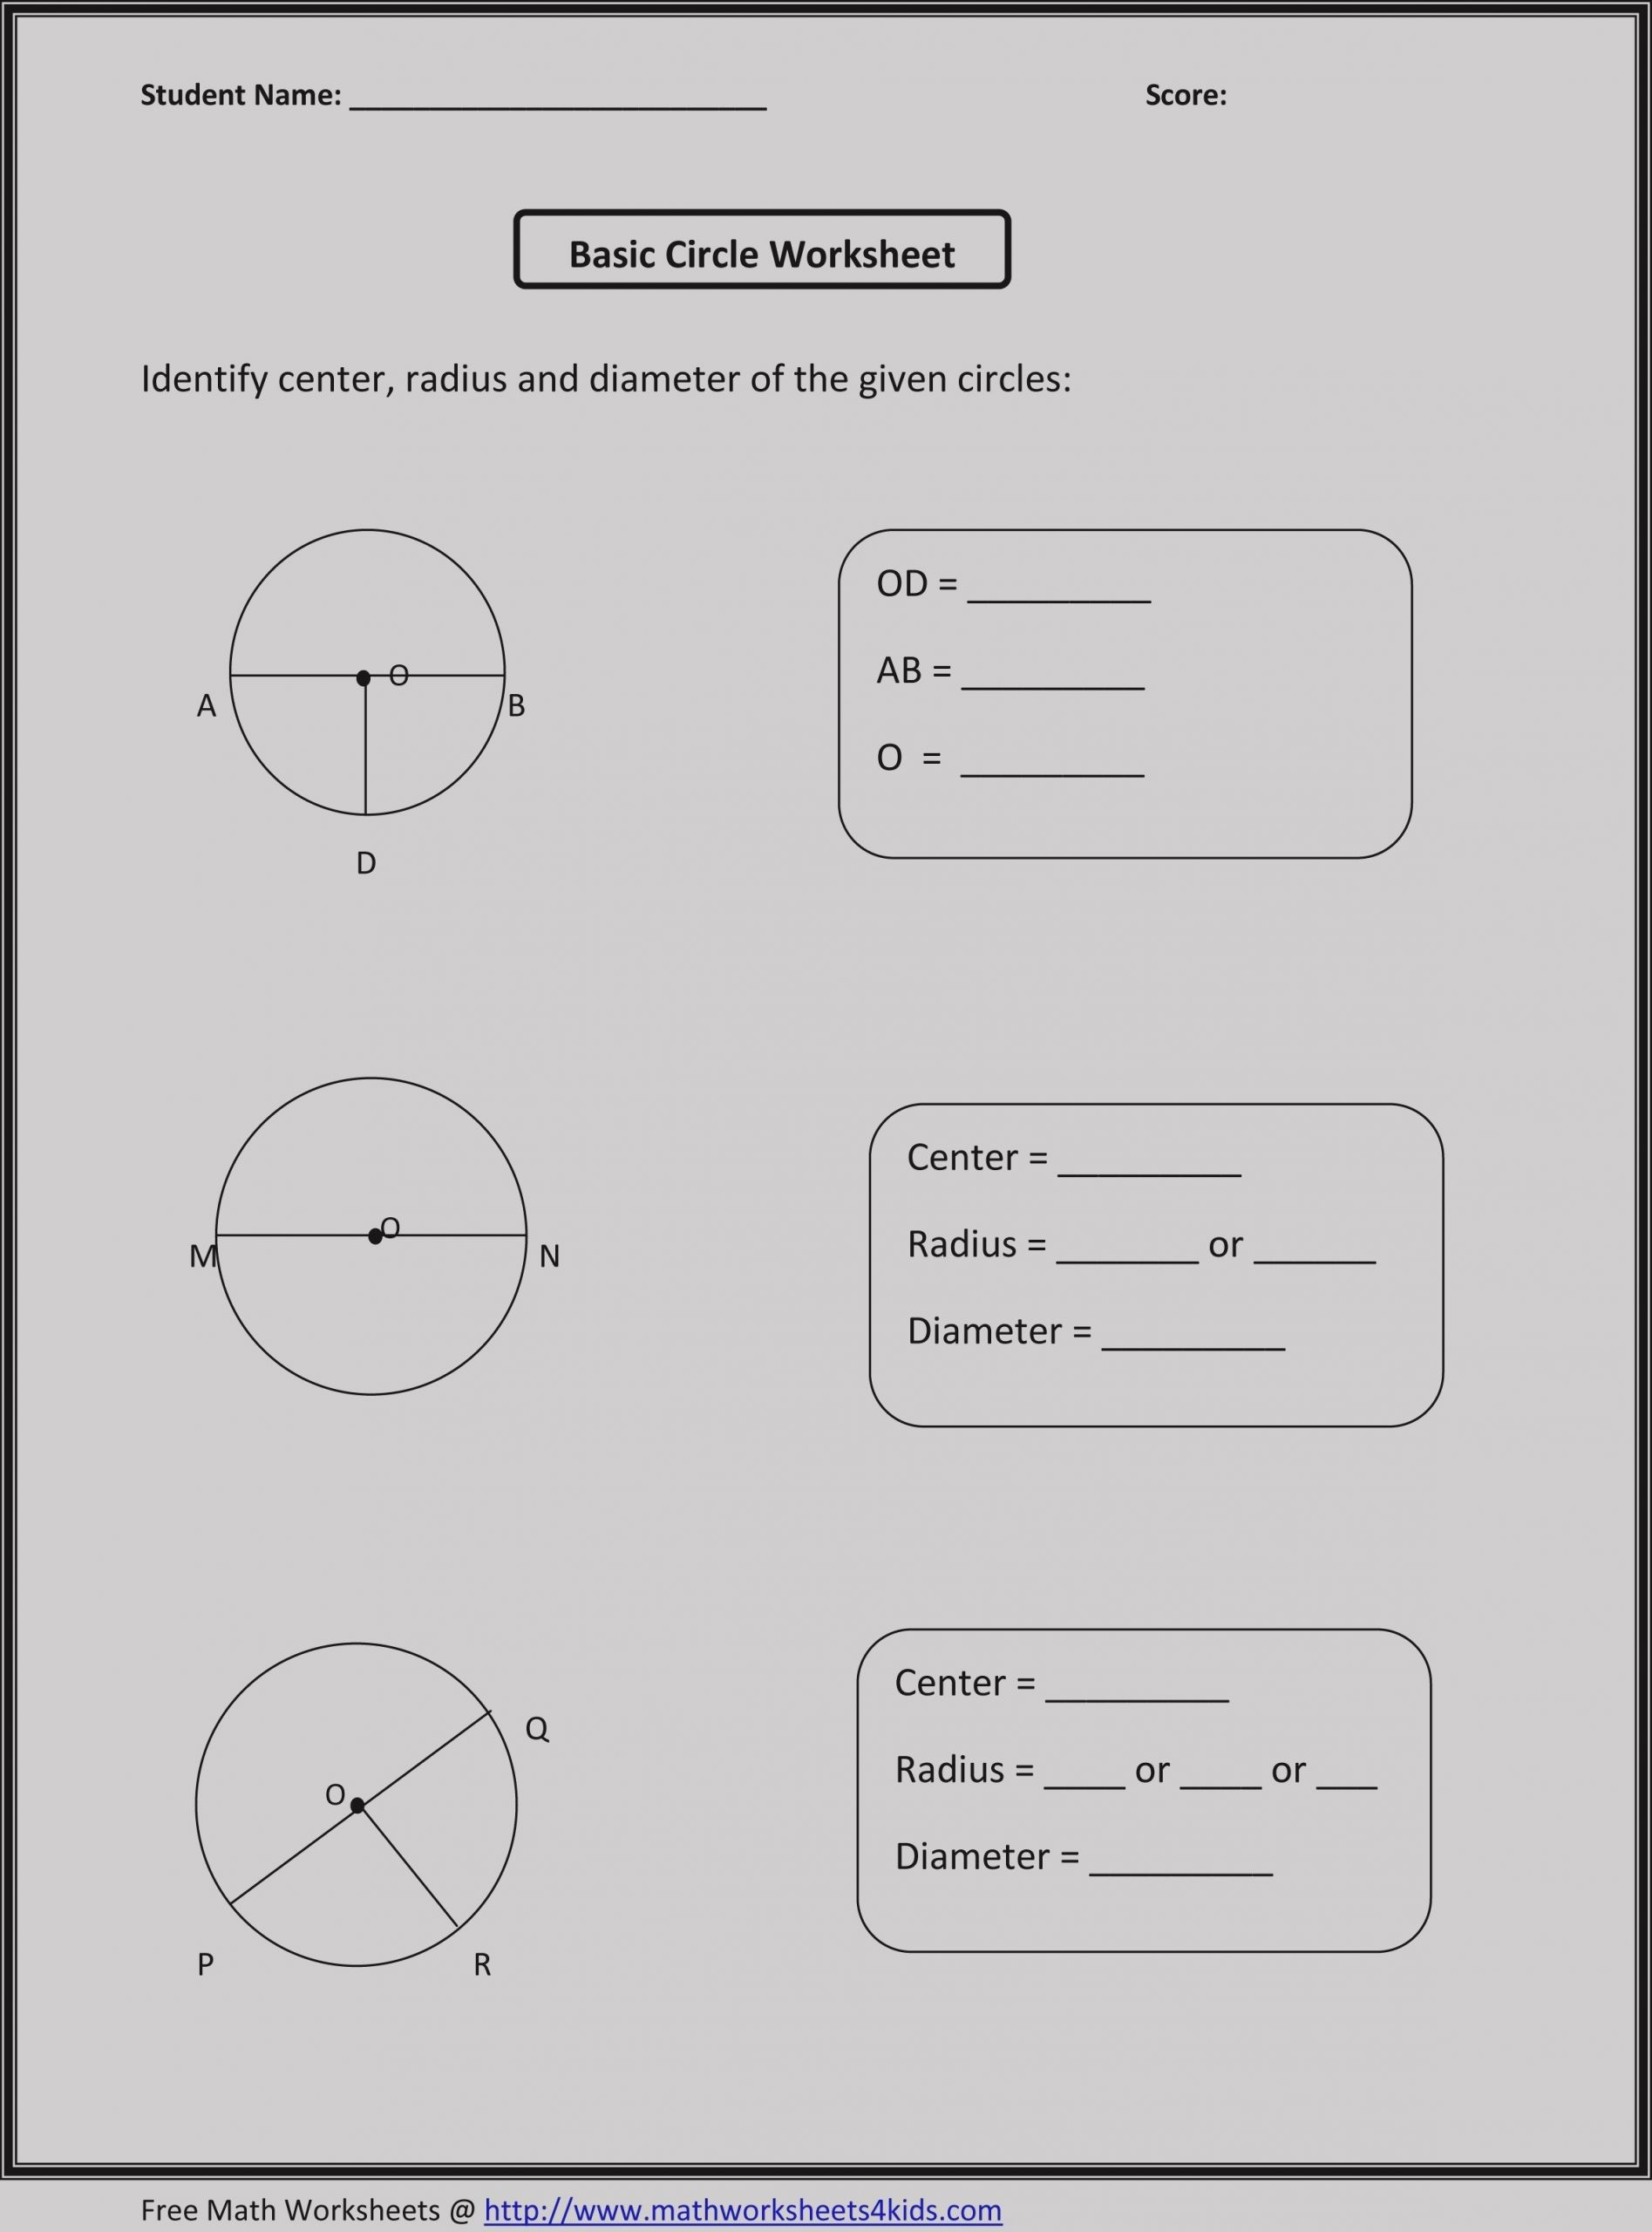 hight resolution of 4 Free Math Worksheets Second Grade 2 Multiplication Multiply 2 Times whole  Tens - apocalomegaproductions.com